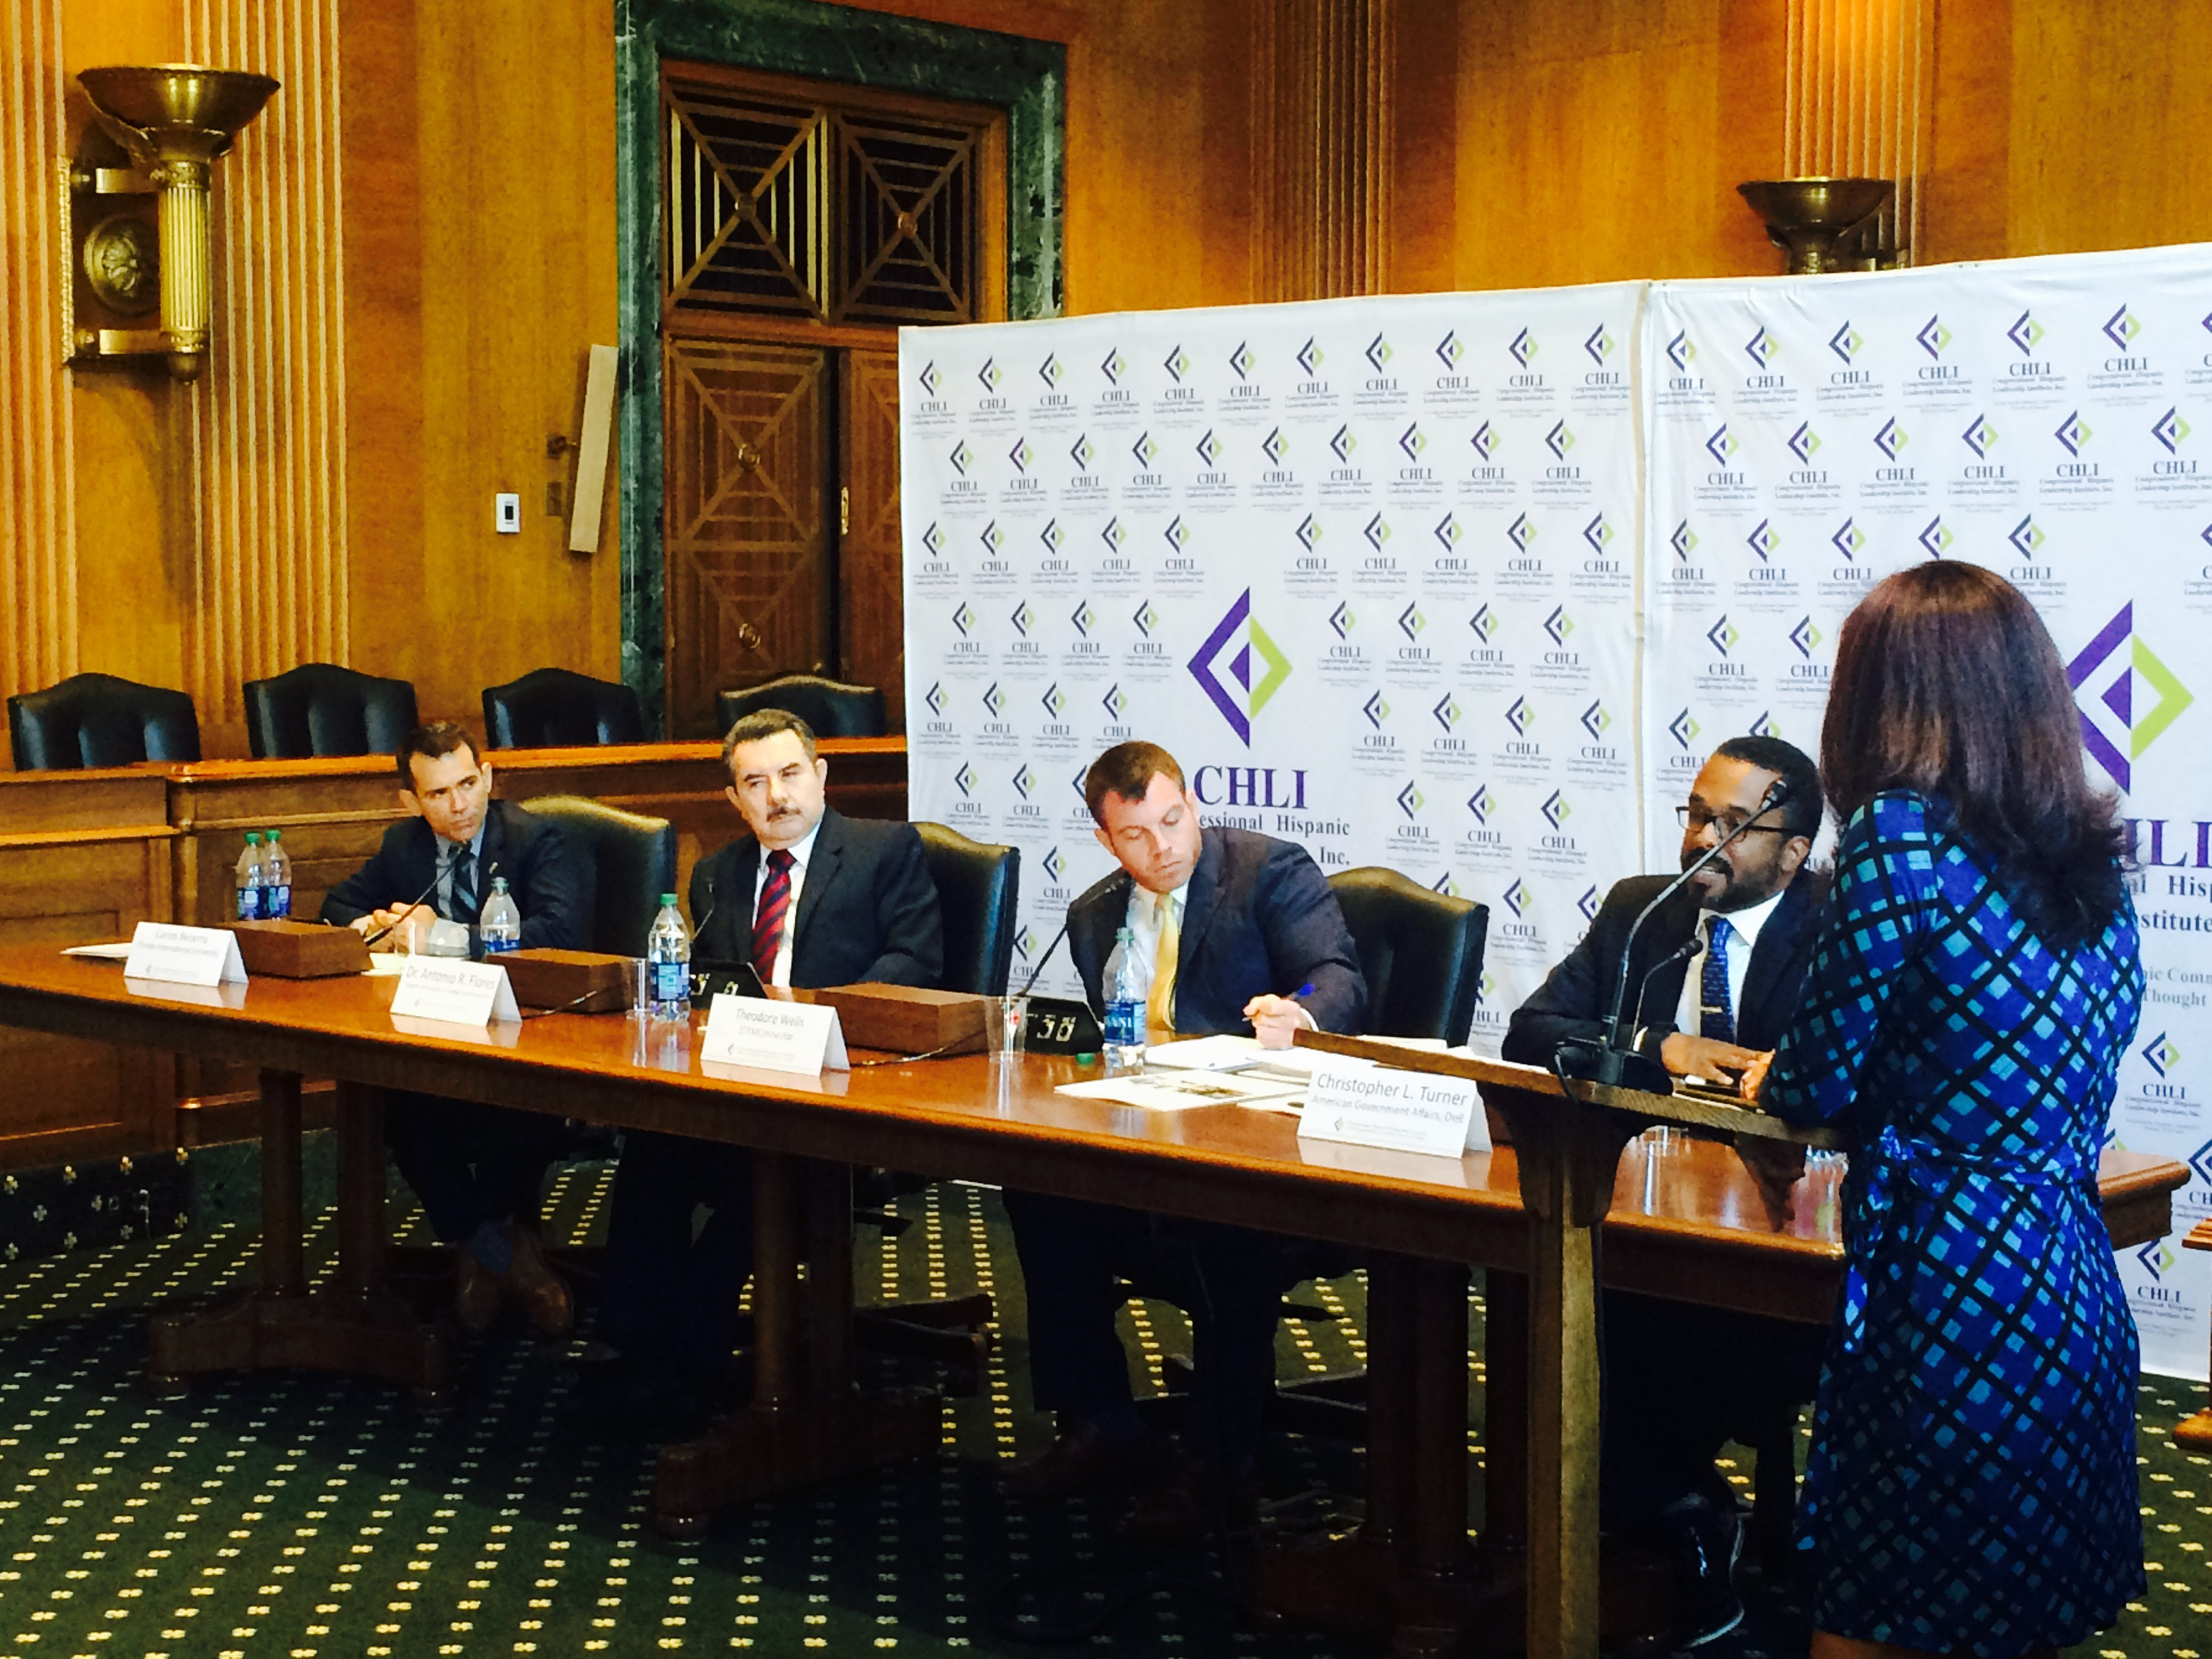 Panelists discuss the importance of increasing the amount of Hispanics in STEM fields. Pictured (left to right): Carlos Becerra (FIU), Dr. Antonio Flores (HACU), Ted Wells (STEMConnector), Cris Turner (Dell)